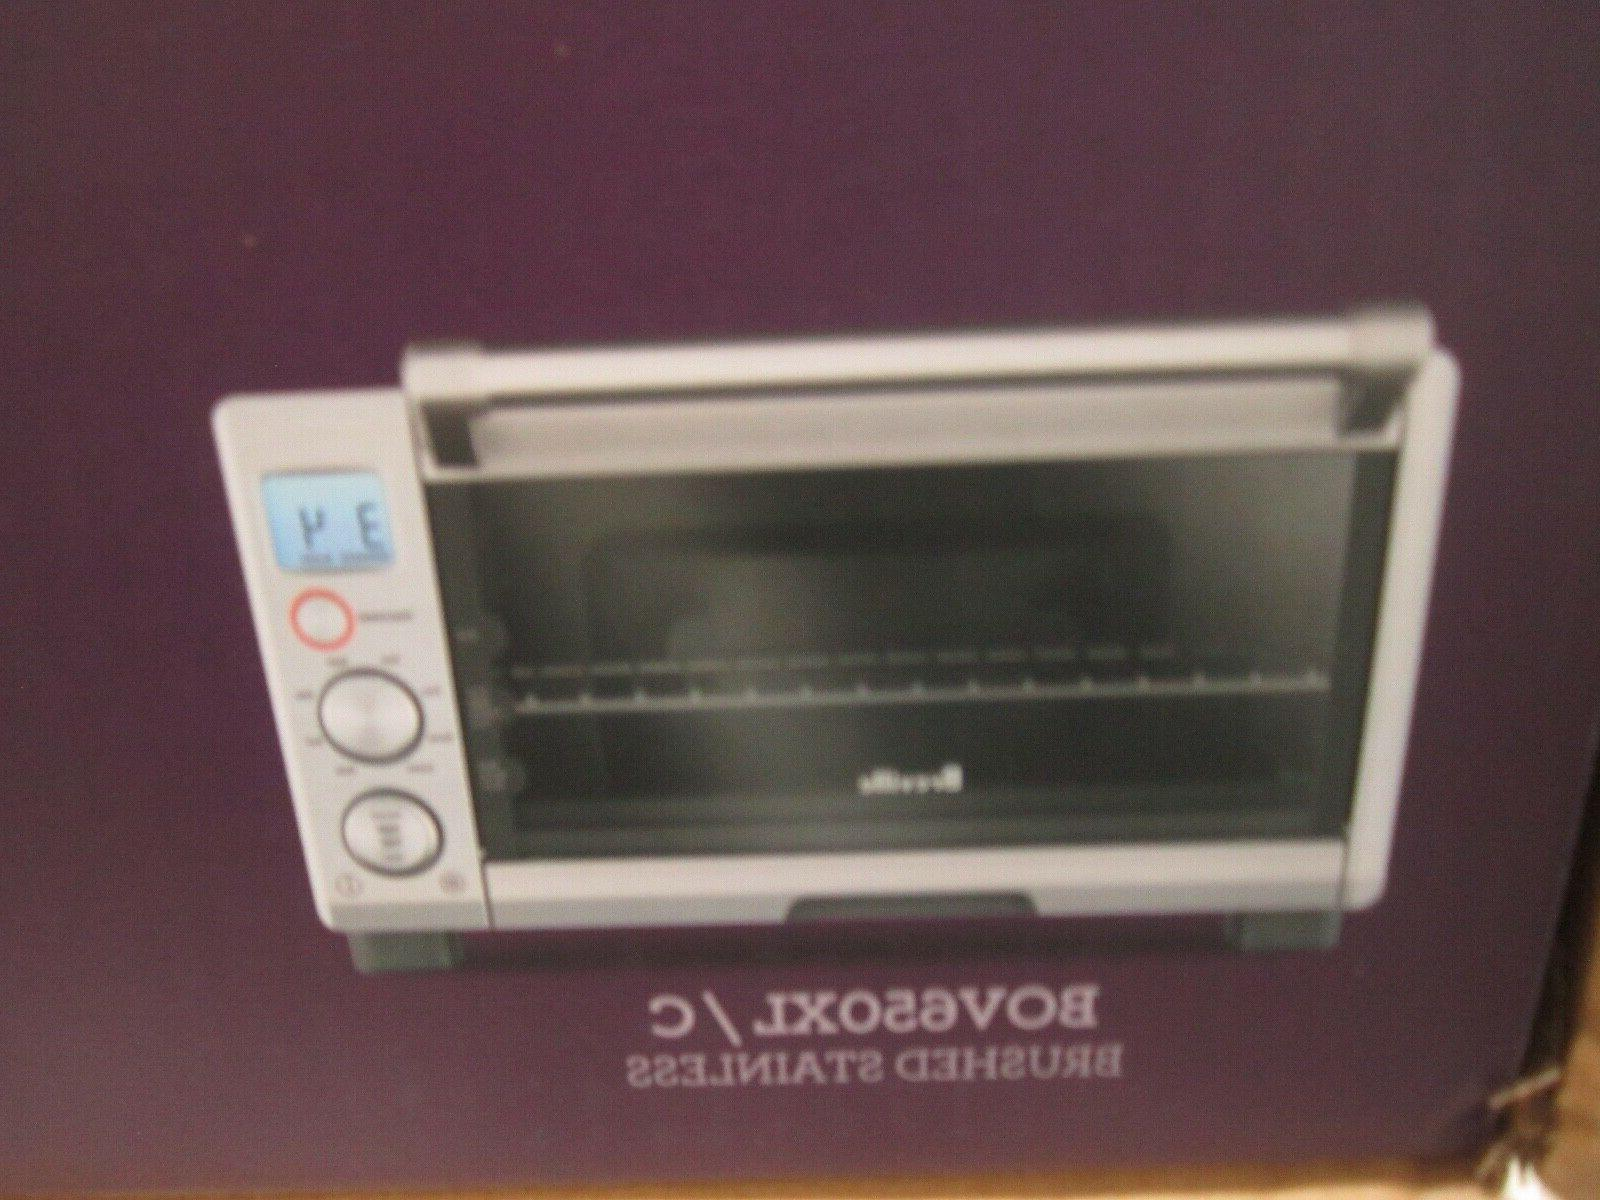 Breville Bov650xl C The Compact Smart Oven Toaster Element